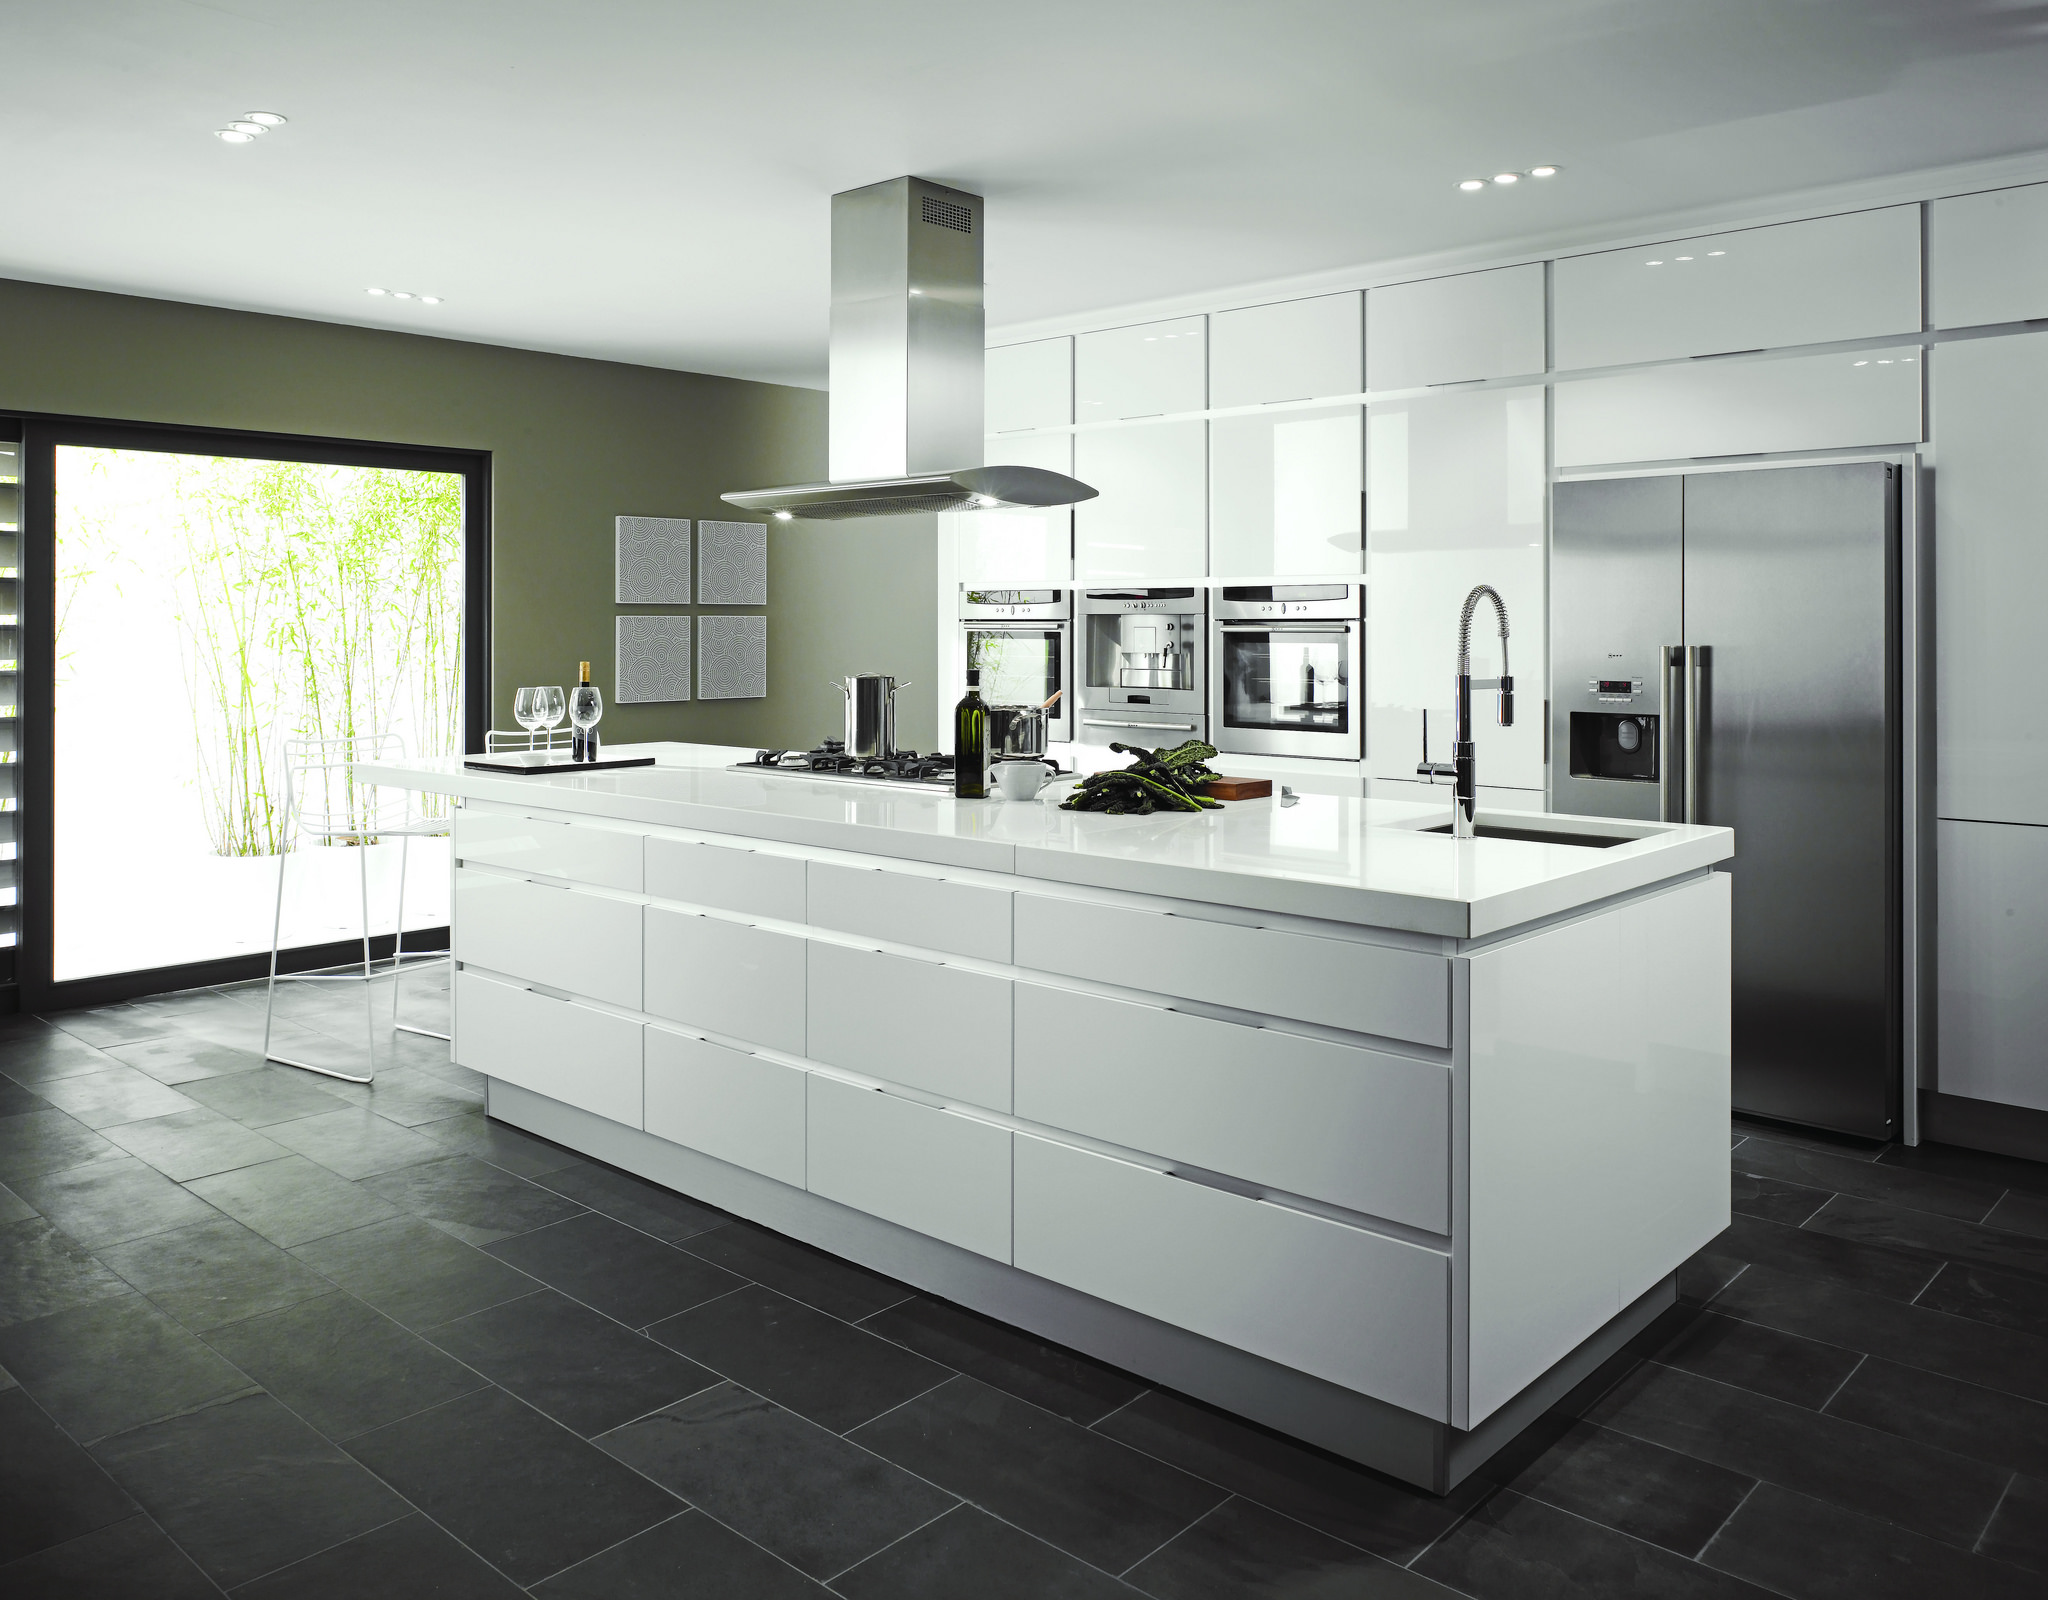 Modern kitchen with high gloss white units